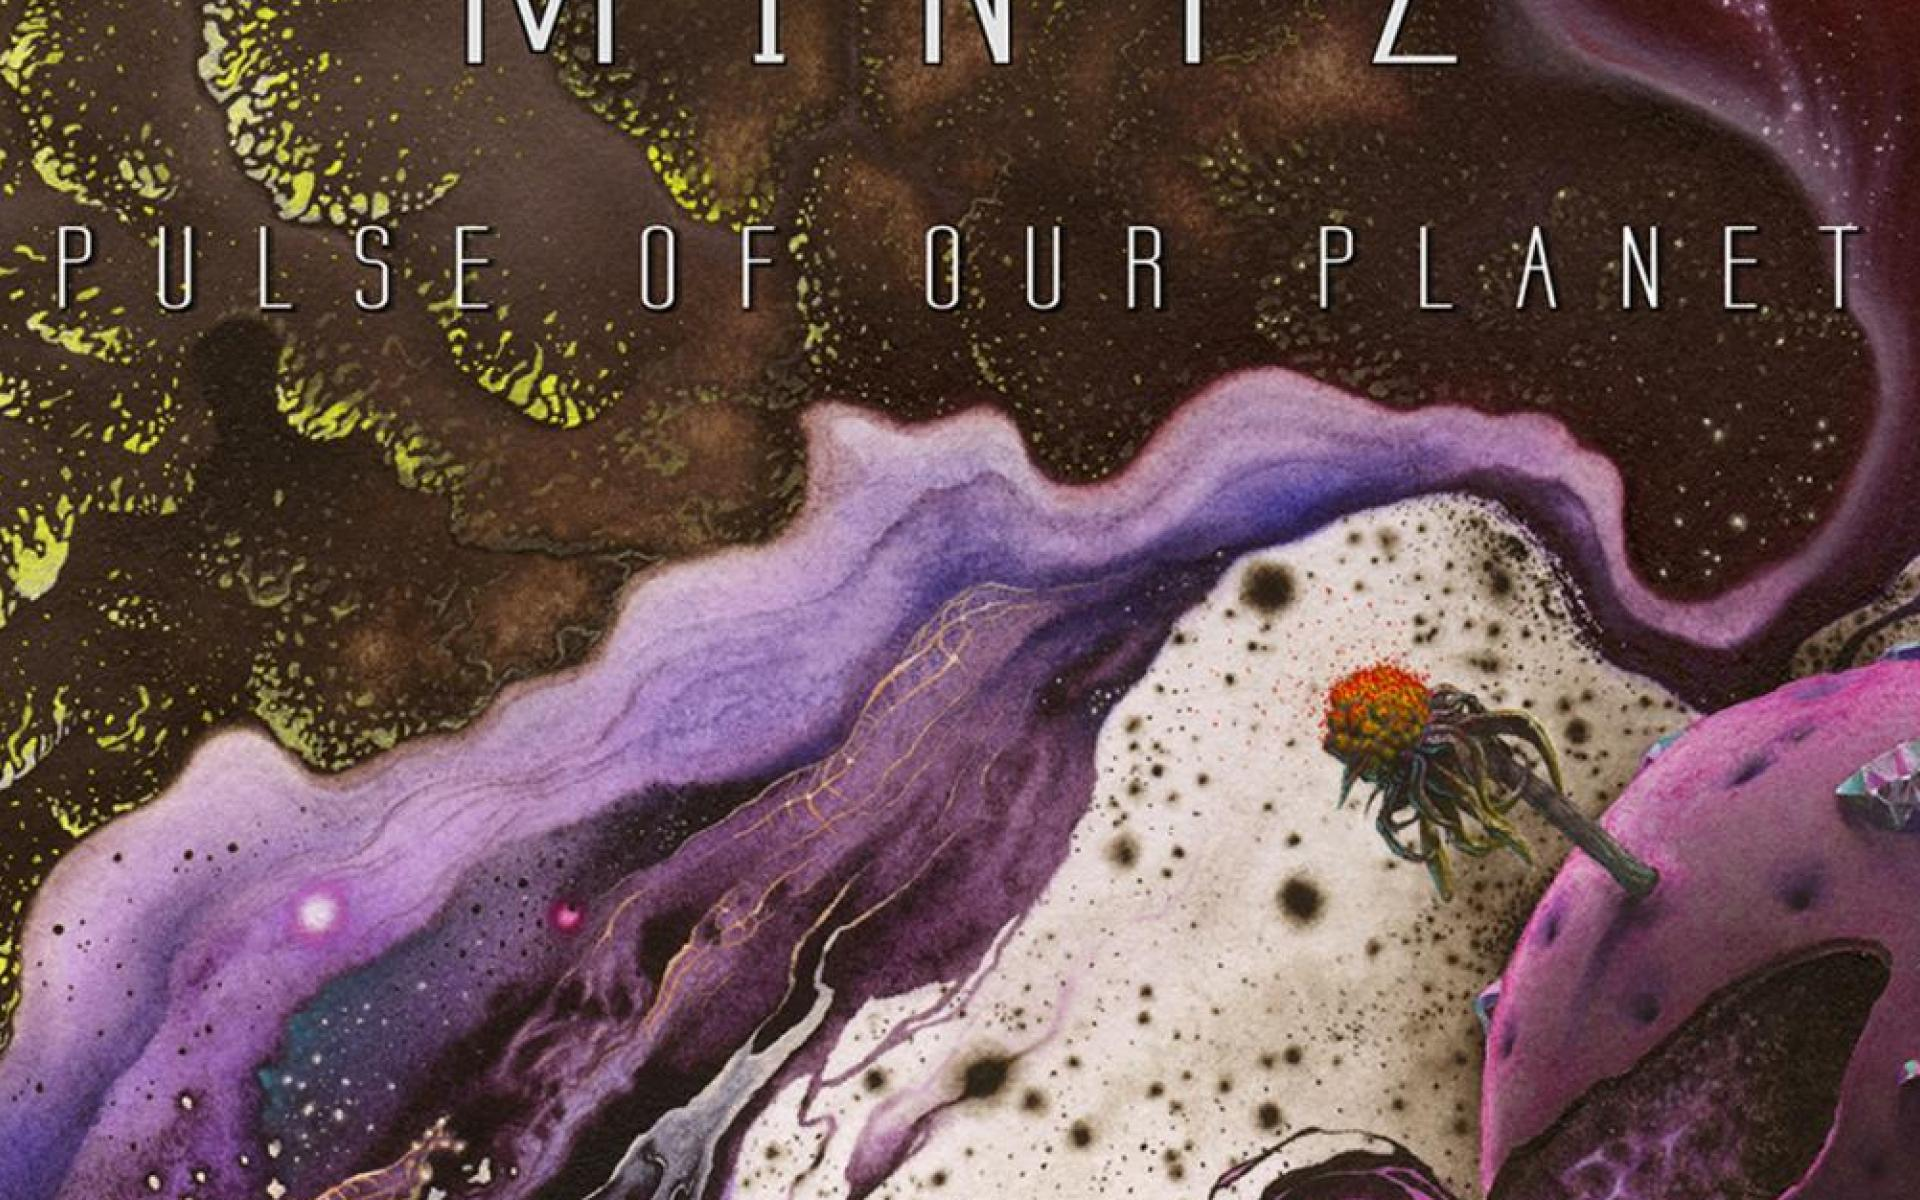 Mintz - Pulse Of Our Planet